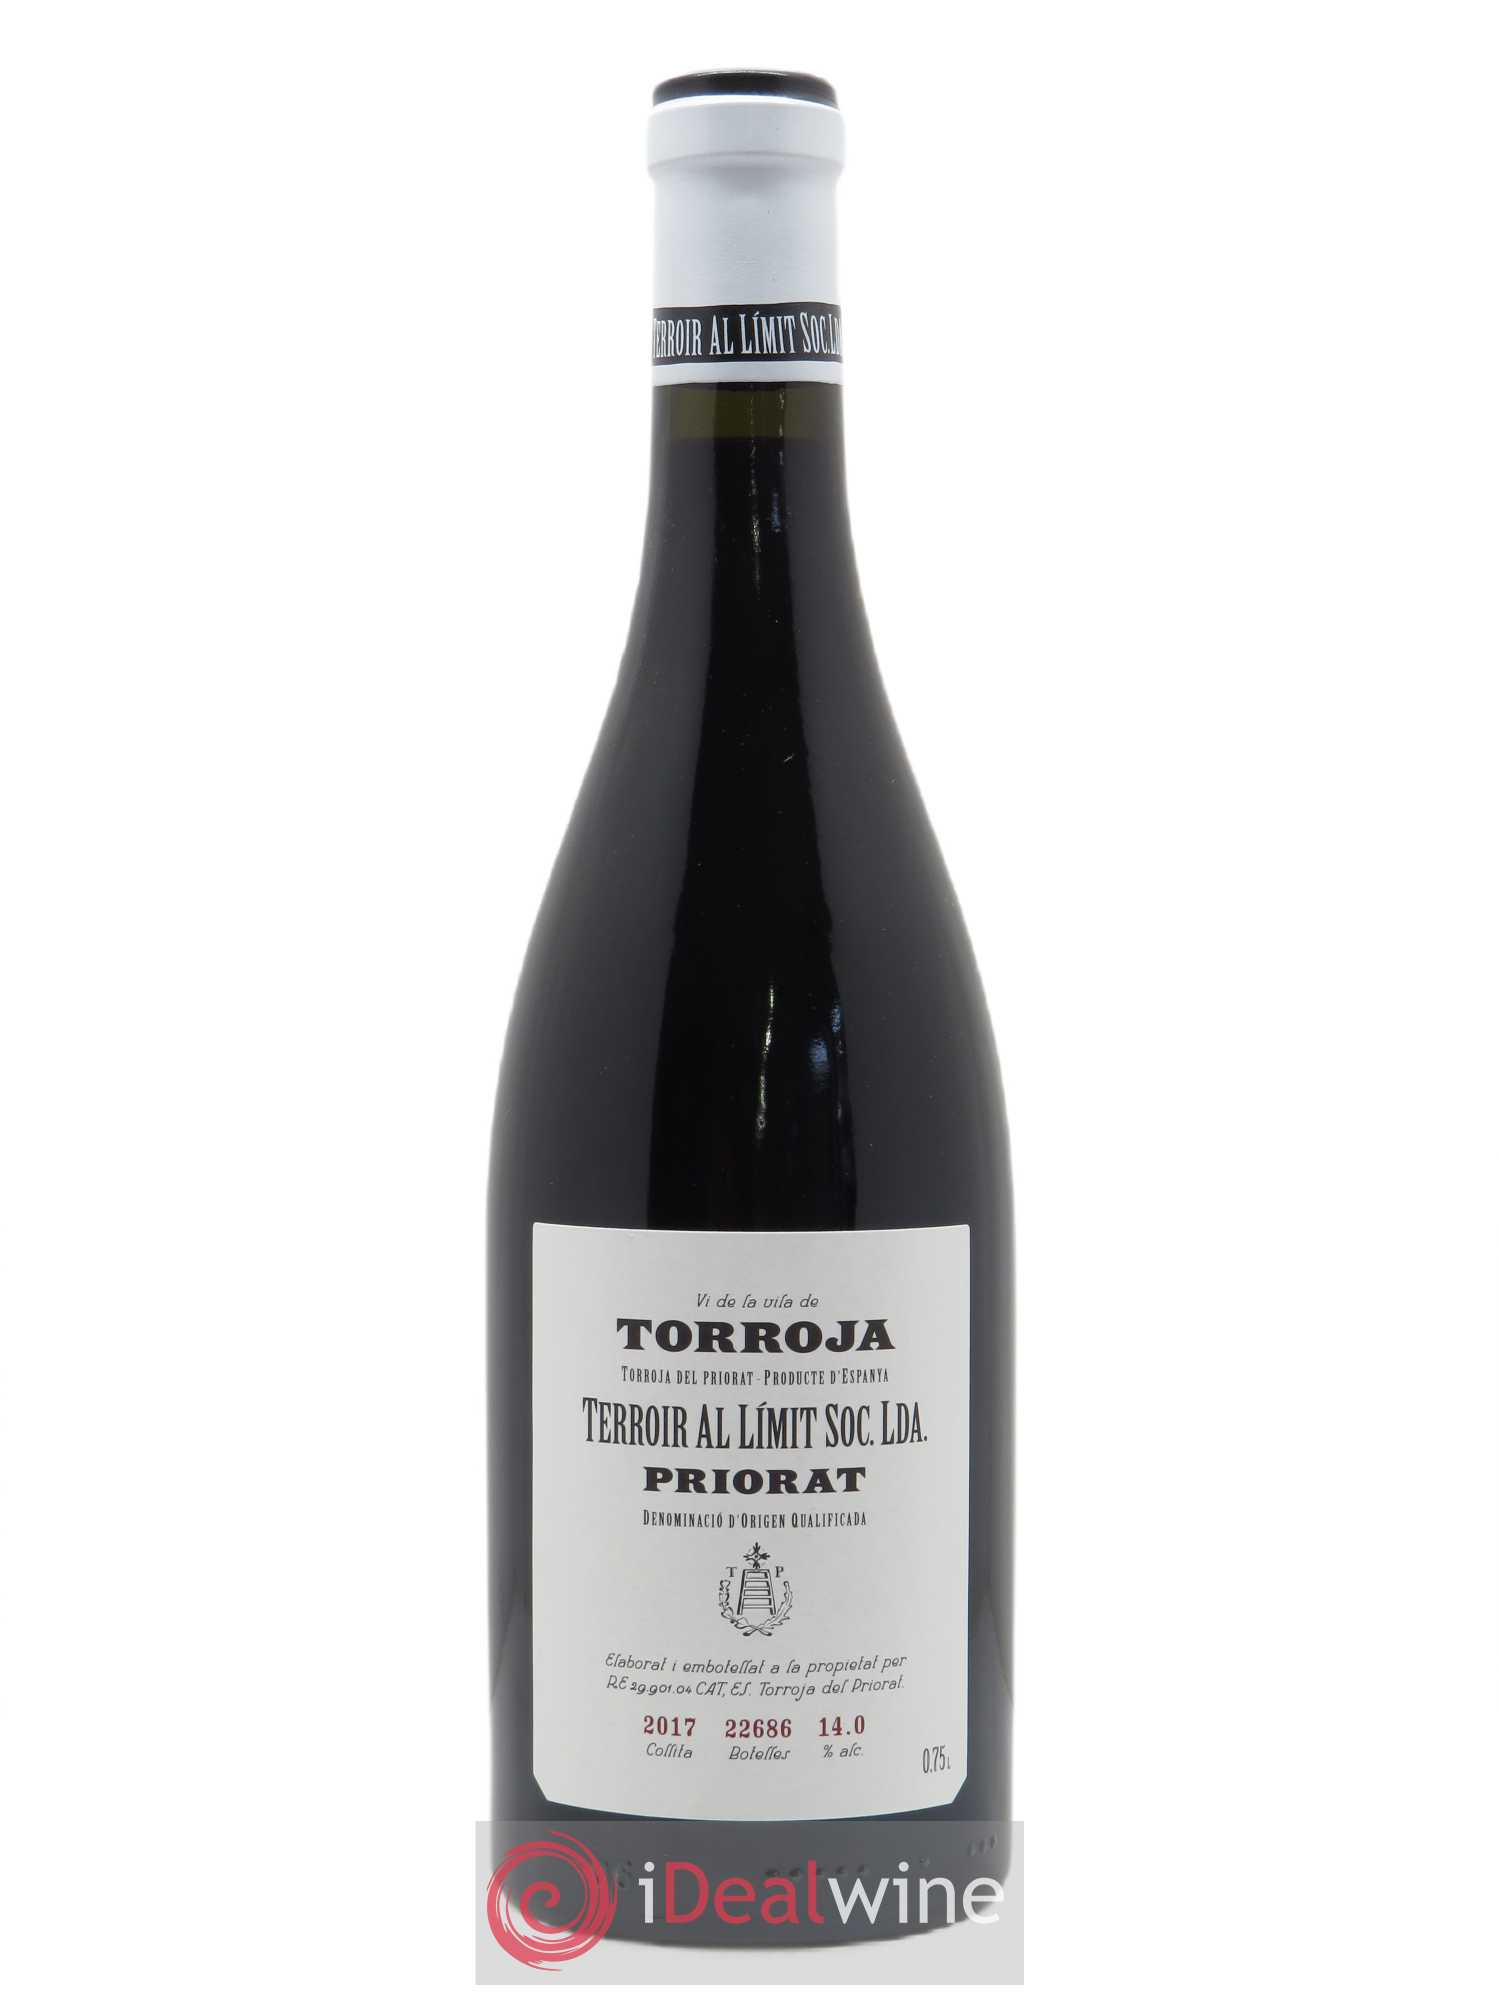 Priorat Terroir Al Limit Torroja  2017 - Lot de 1 Bouteille